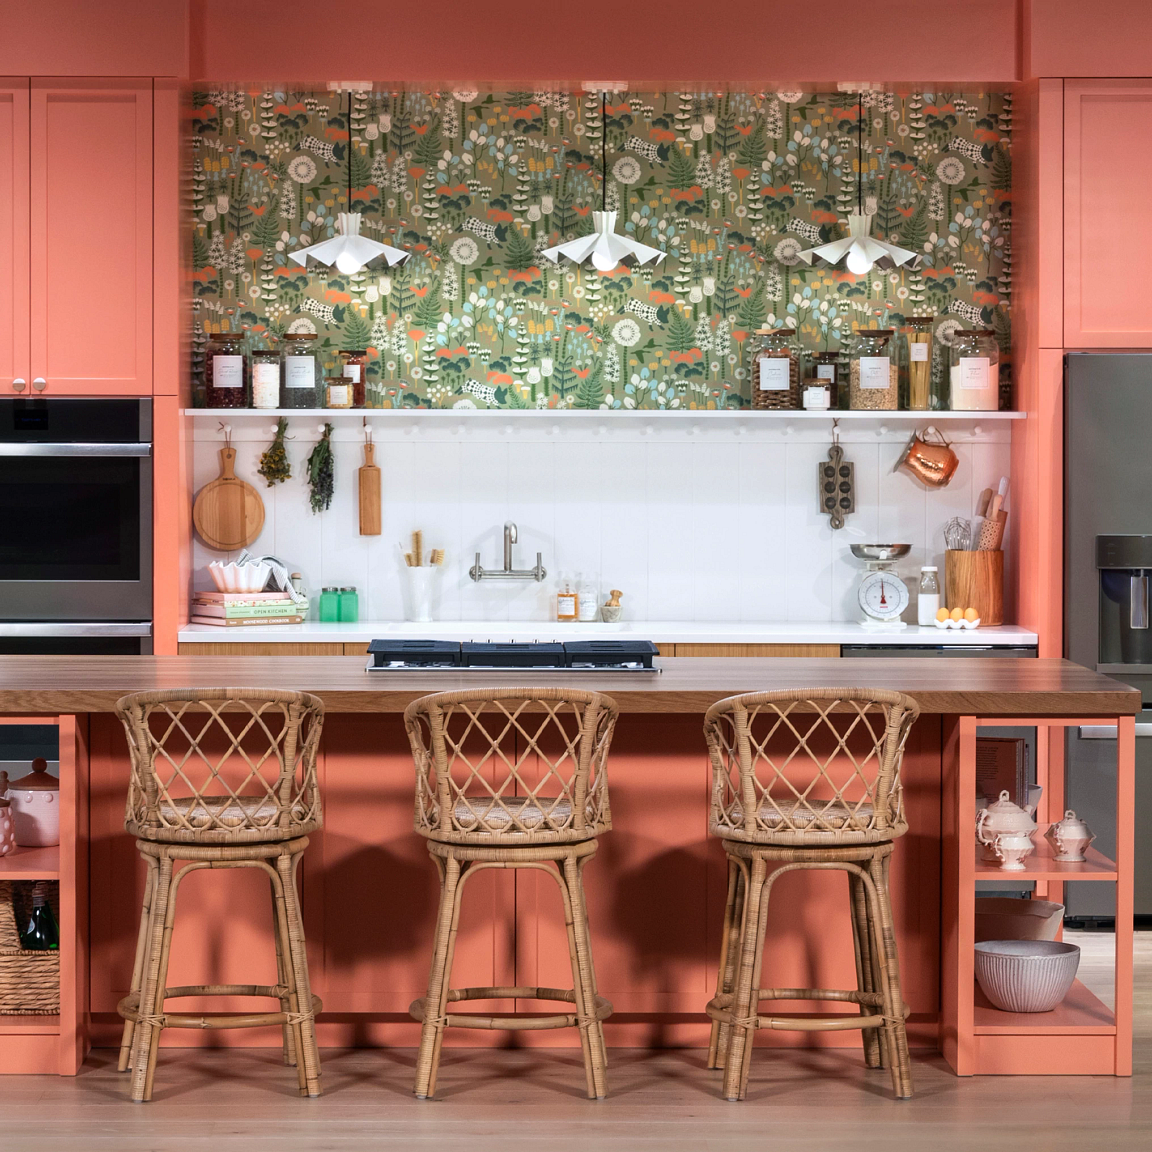 A kitchen with pink cabinets  Description automatically generated with medium confidence